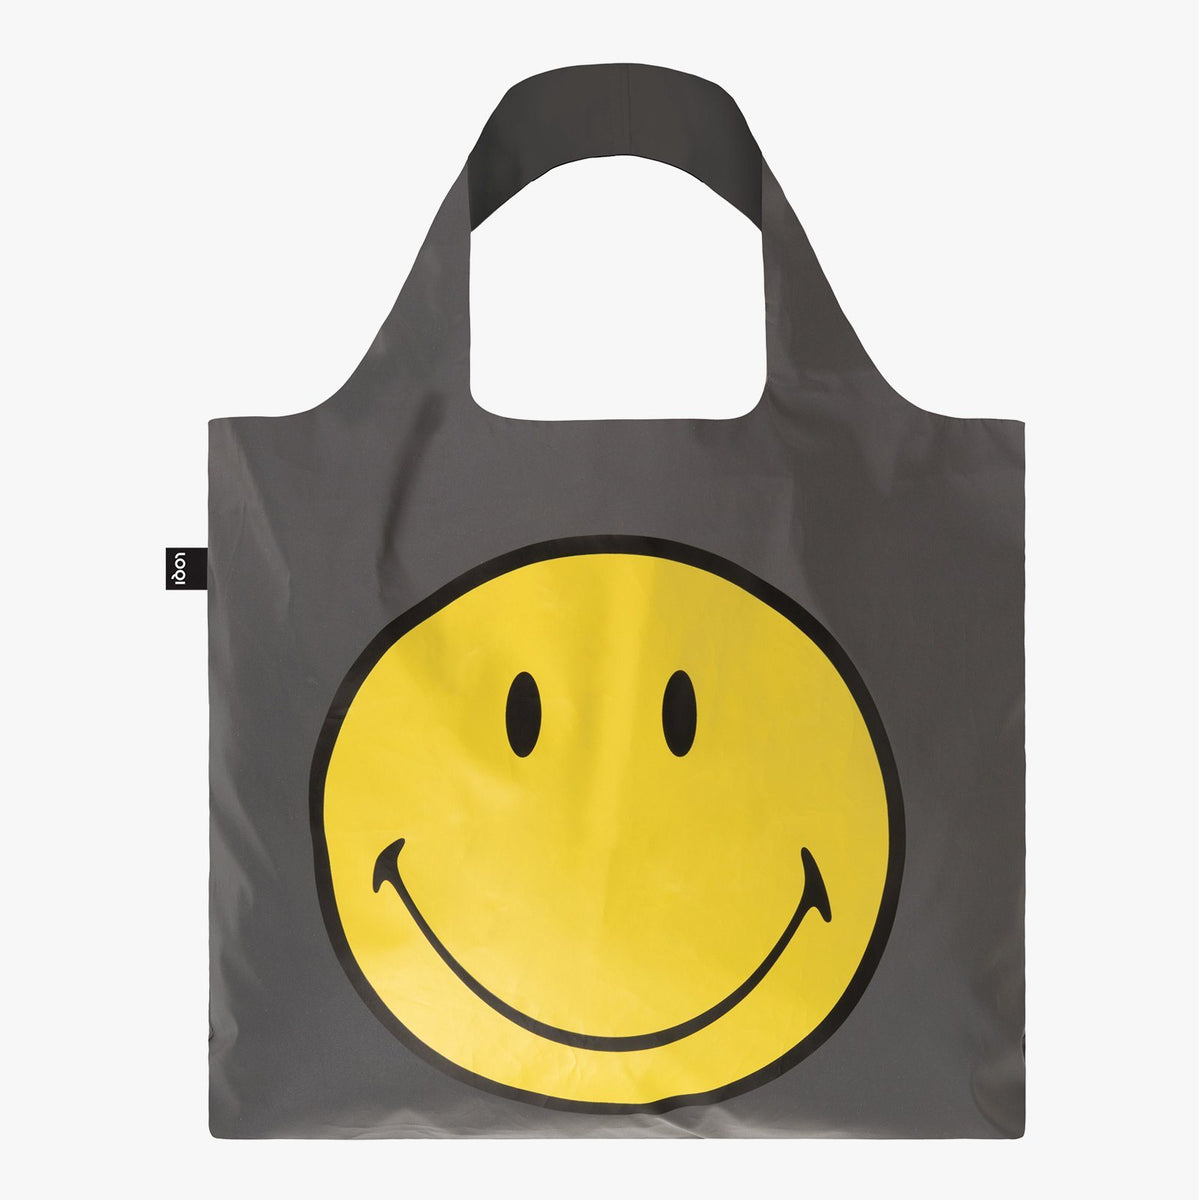 LOQI Reflective Smiley Bag